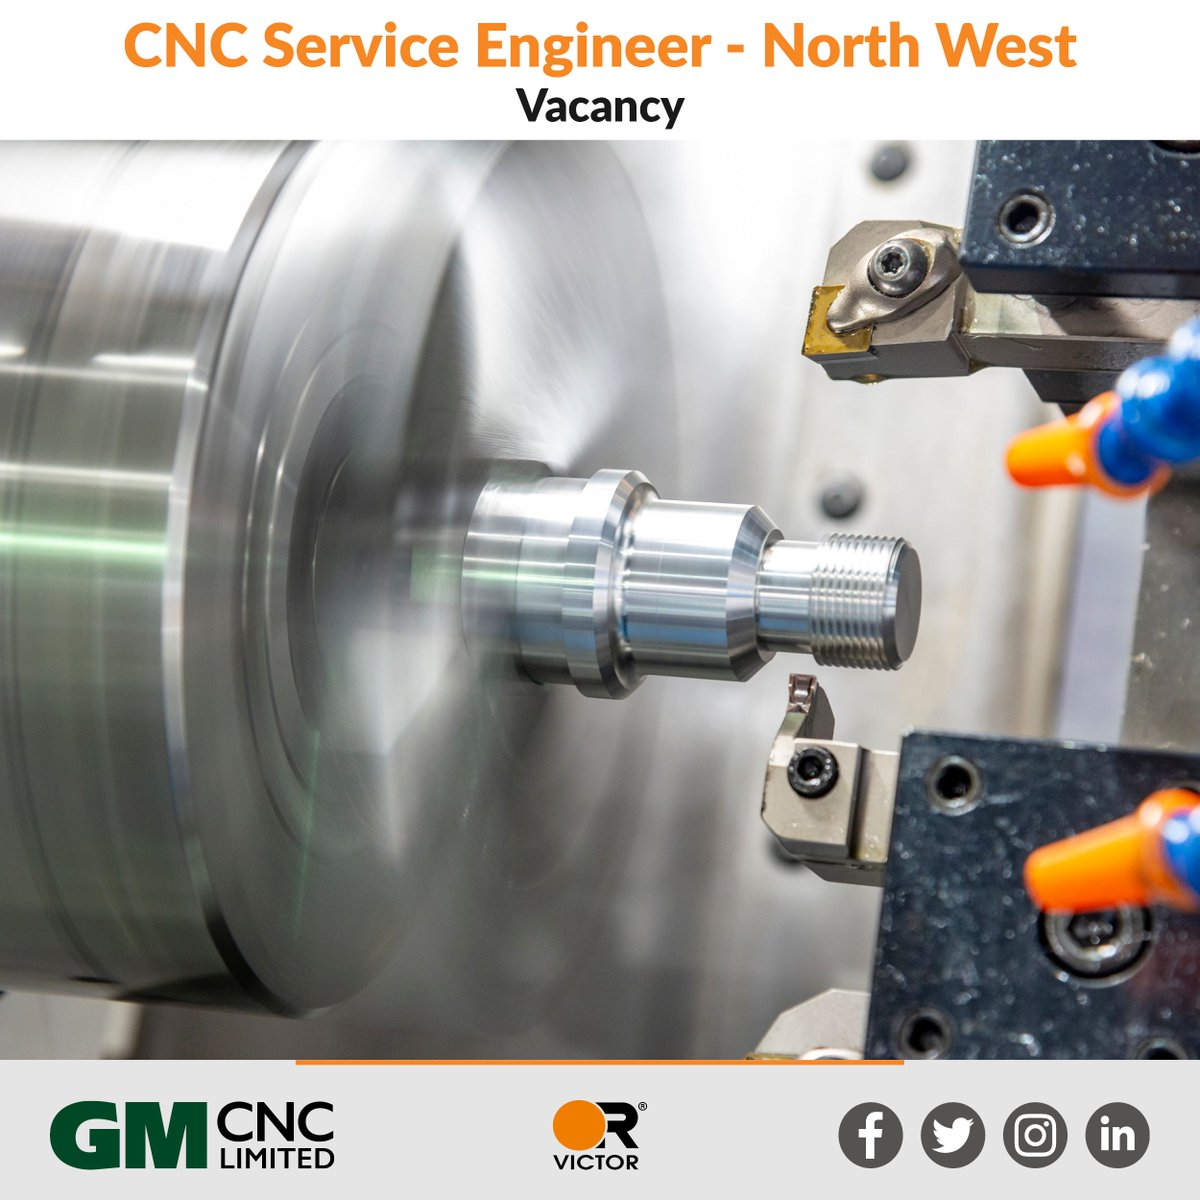 VACANCY - We currently have vacancies for 2 CNC Service Engineers, based in the North West, required to provide first class service to our customers. For more information and to apply see https://t.co/cdSTZME87l #Oldham #job #newjob #cnc #service #vacancy #Victor #gmcnc https://t.co/y3ySlGaAJL